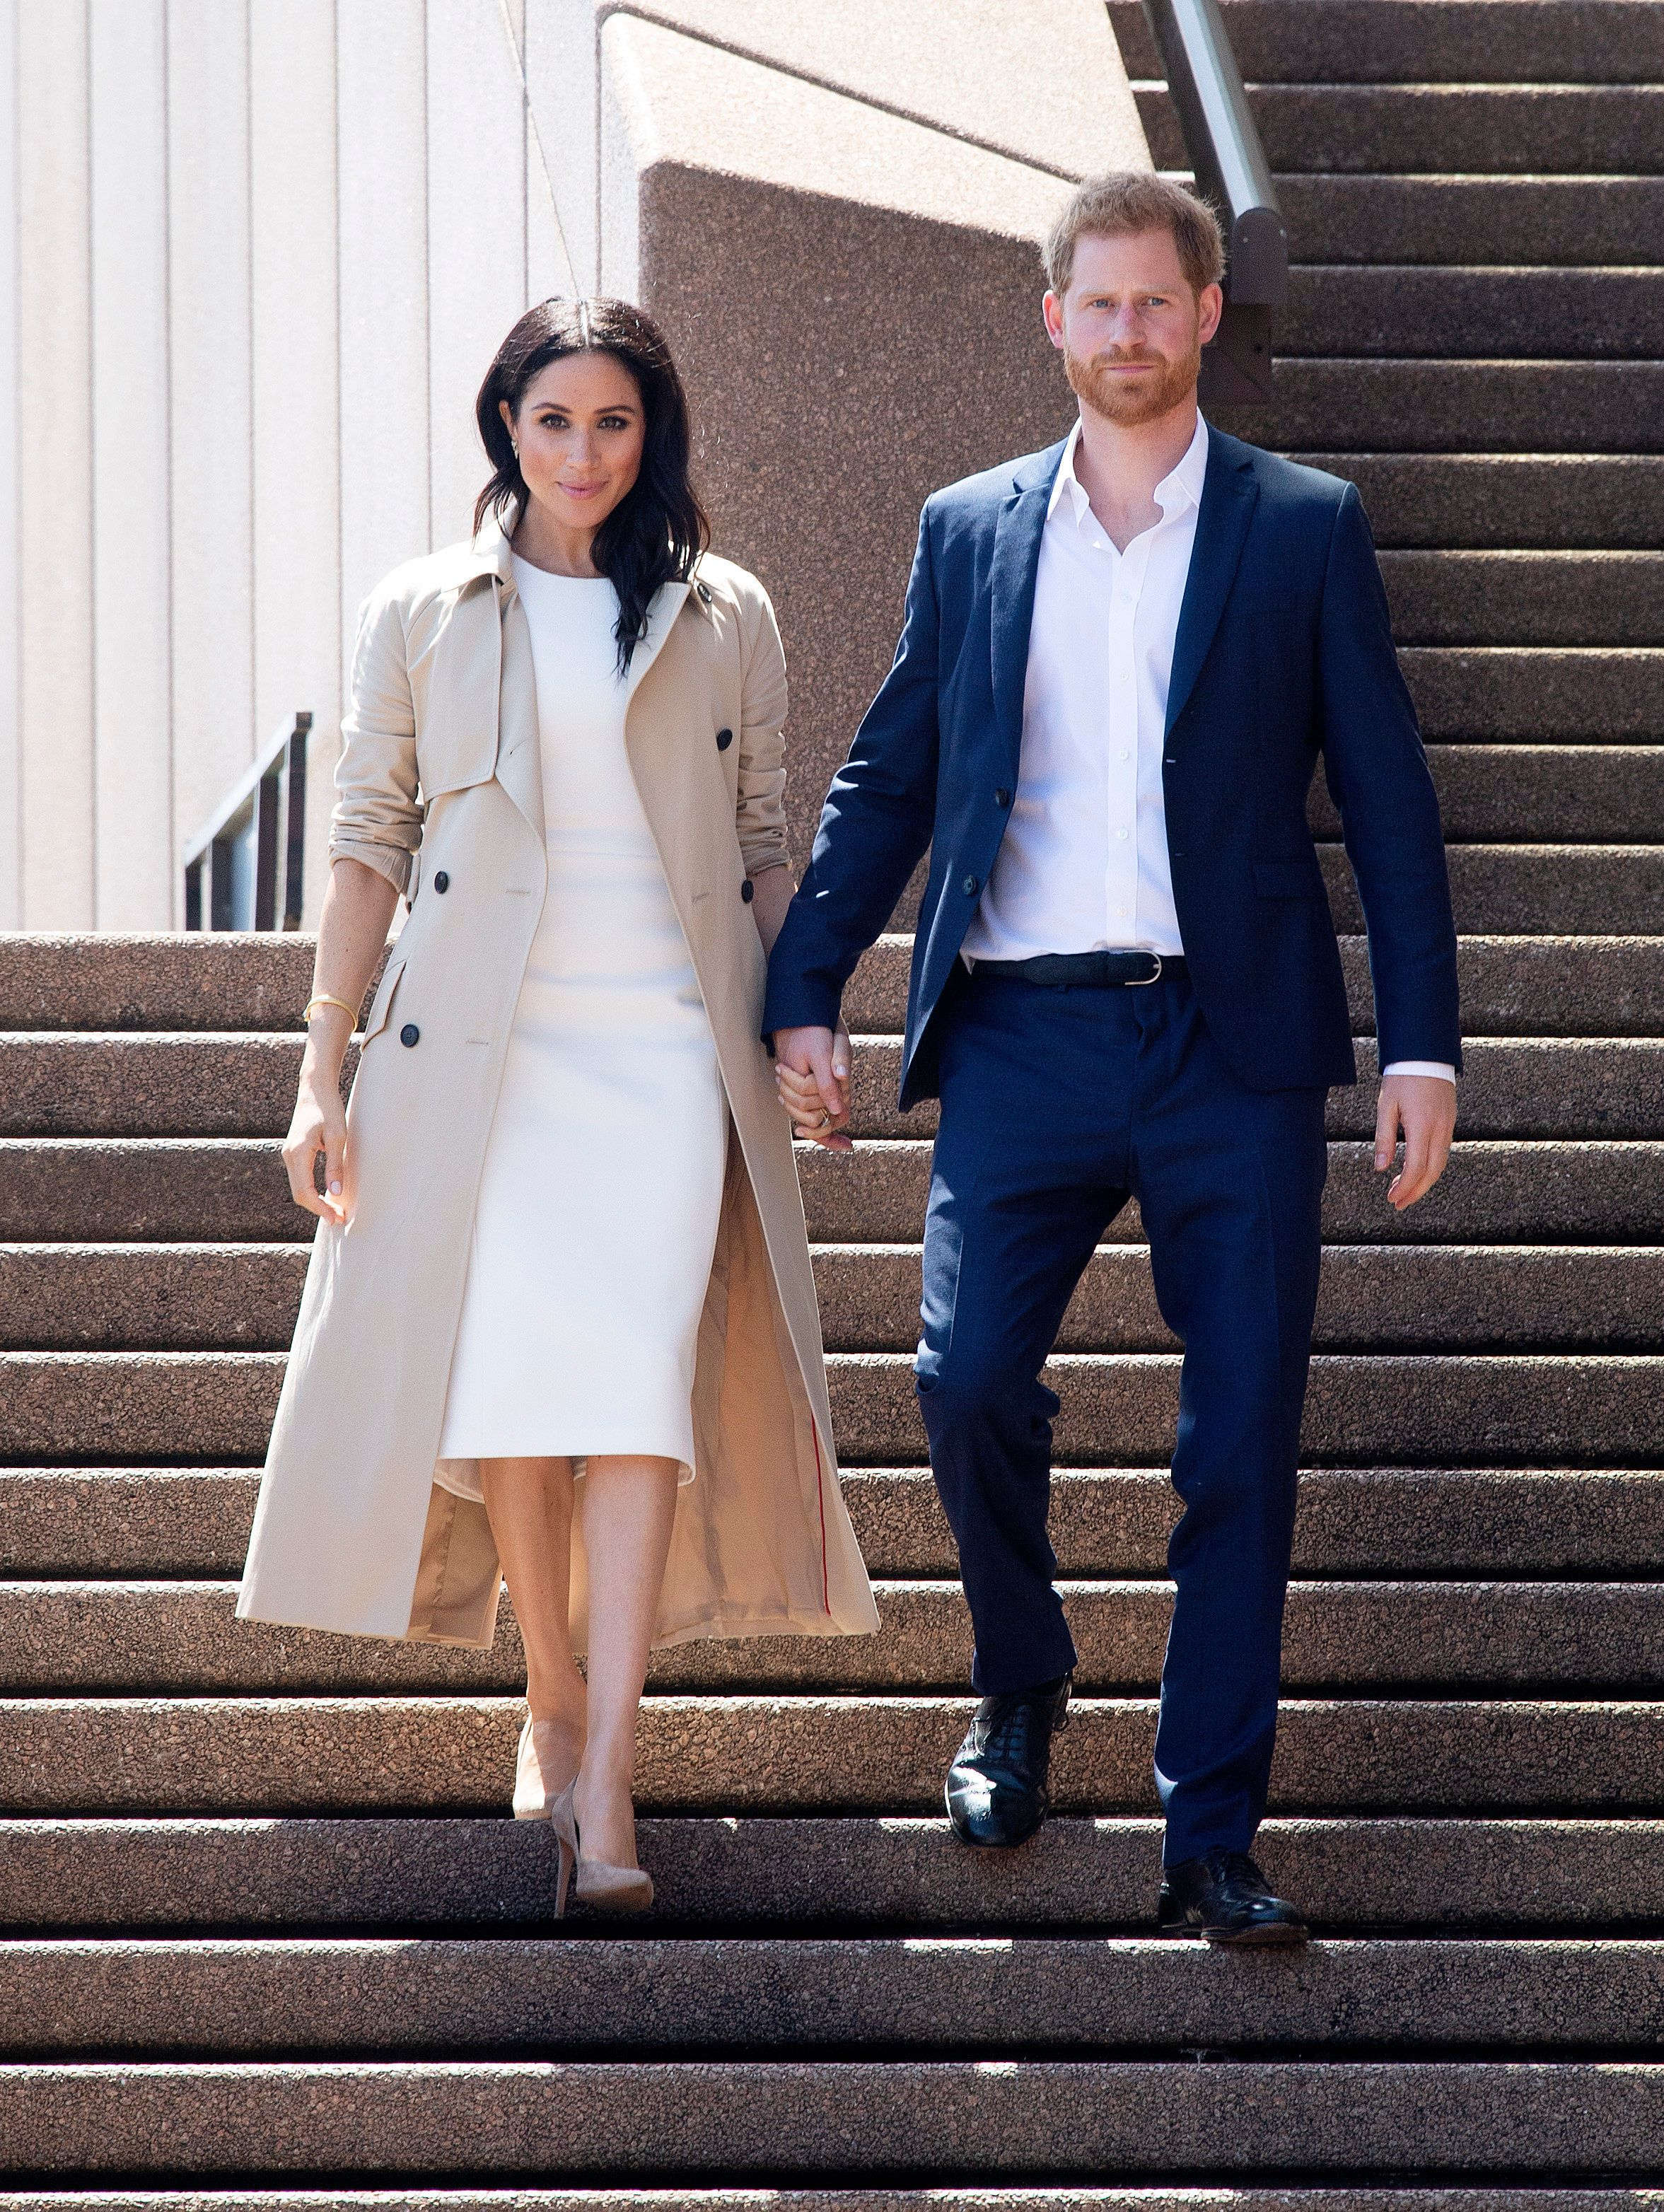 Prince Harry And Meghan Markle Will Move To Windsor Before Becoming Parents, Palace